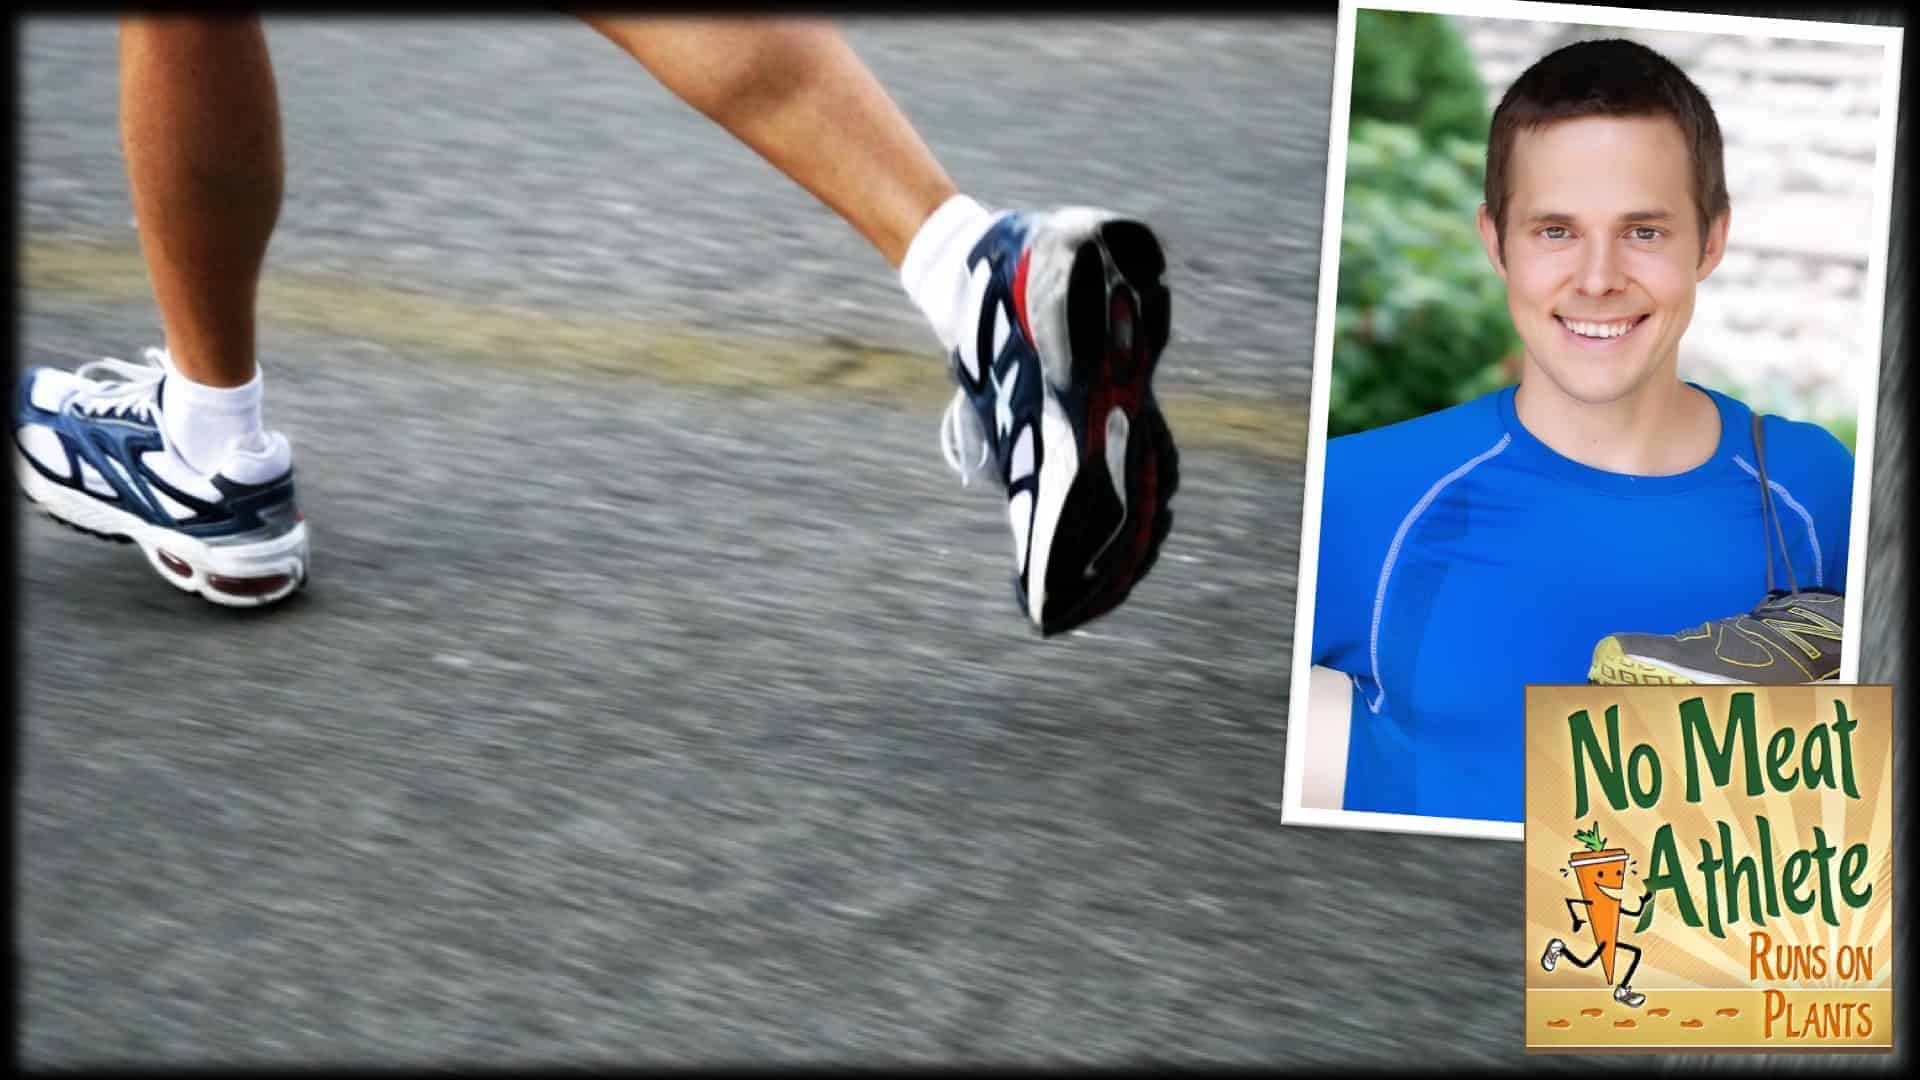 A close-up of a person's feet in running shoes are shown in the process of running on tarmac. An inset photograph of Matt Frazier, founder of the virally popular blog No Meat Athlete is shown on the right. Below is the No Meat Athlete logo.